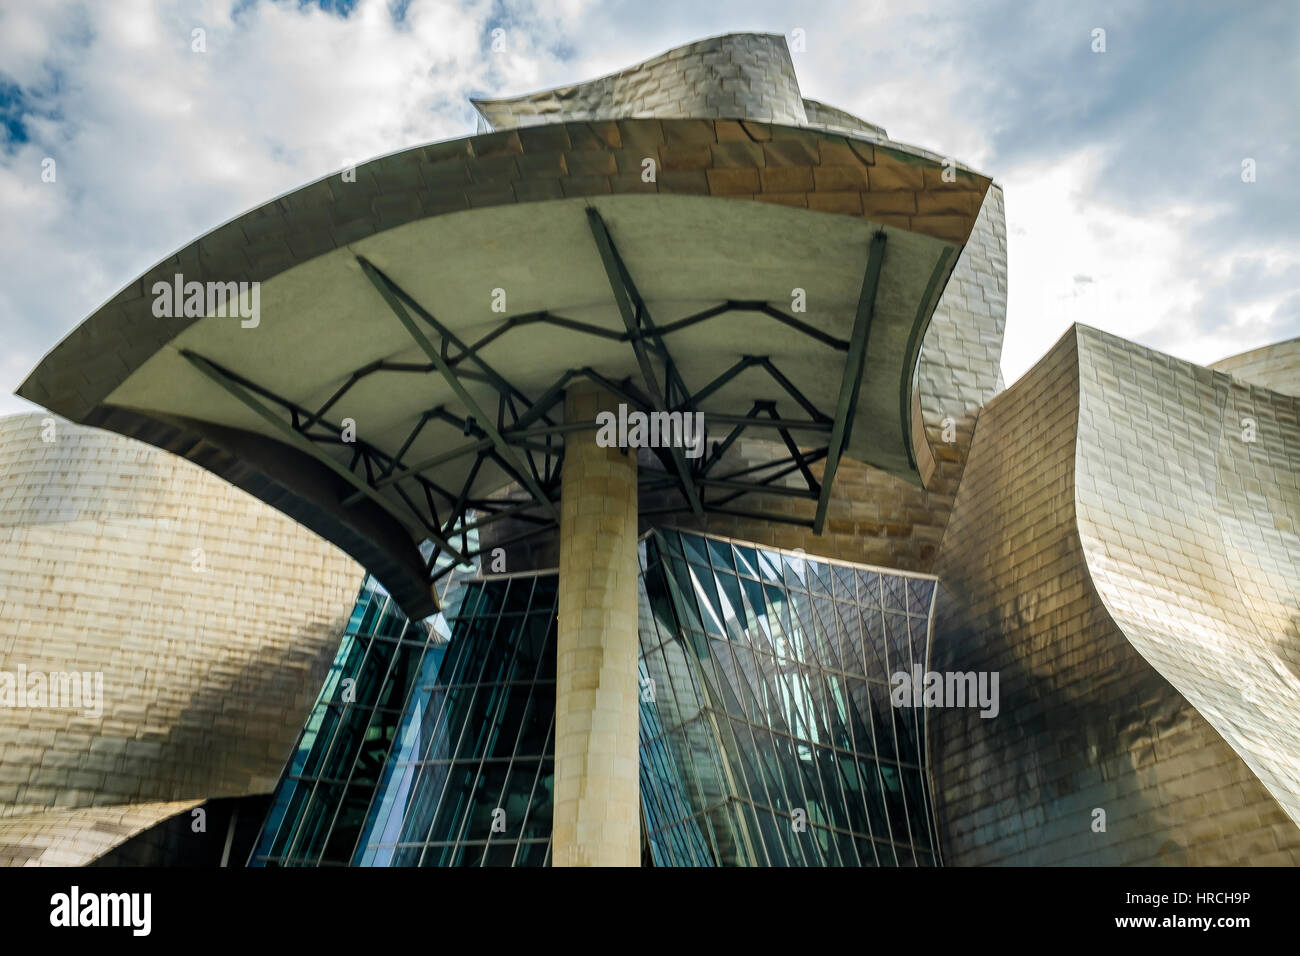 Curved Architecture Curved Architecture Structure With Shiny Walls And Bent Glass